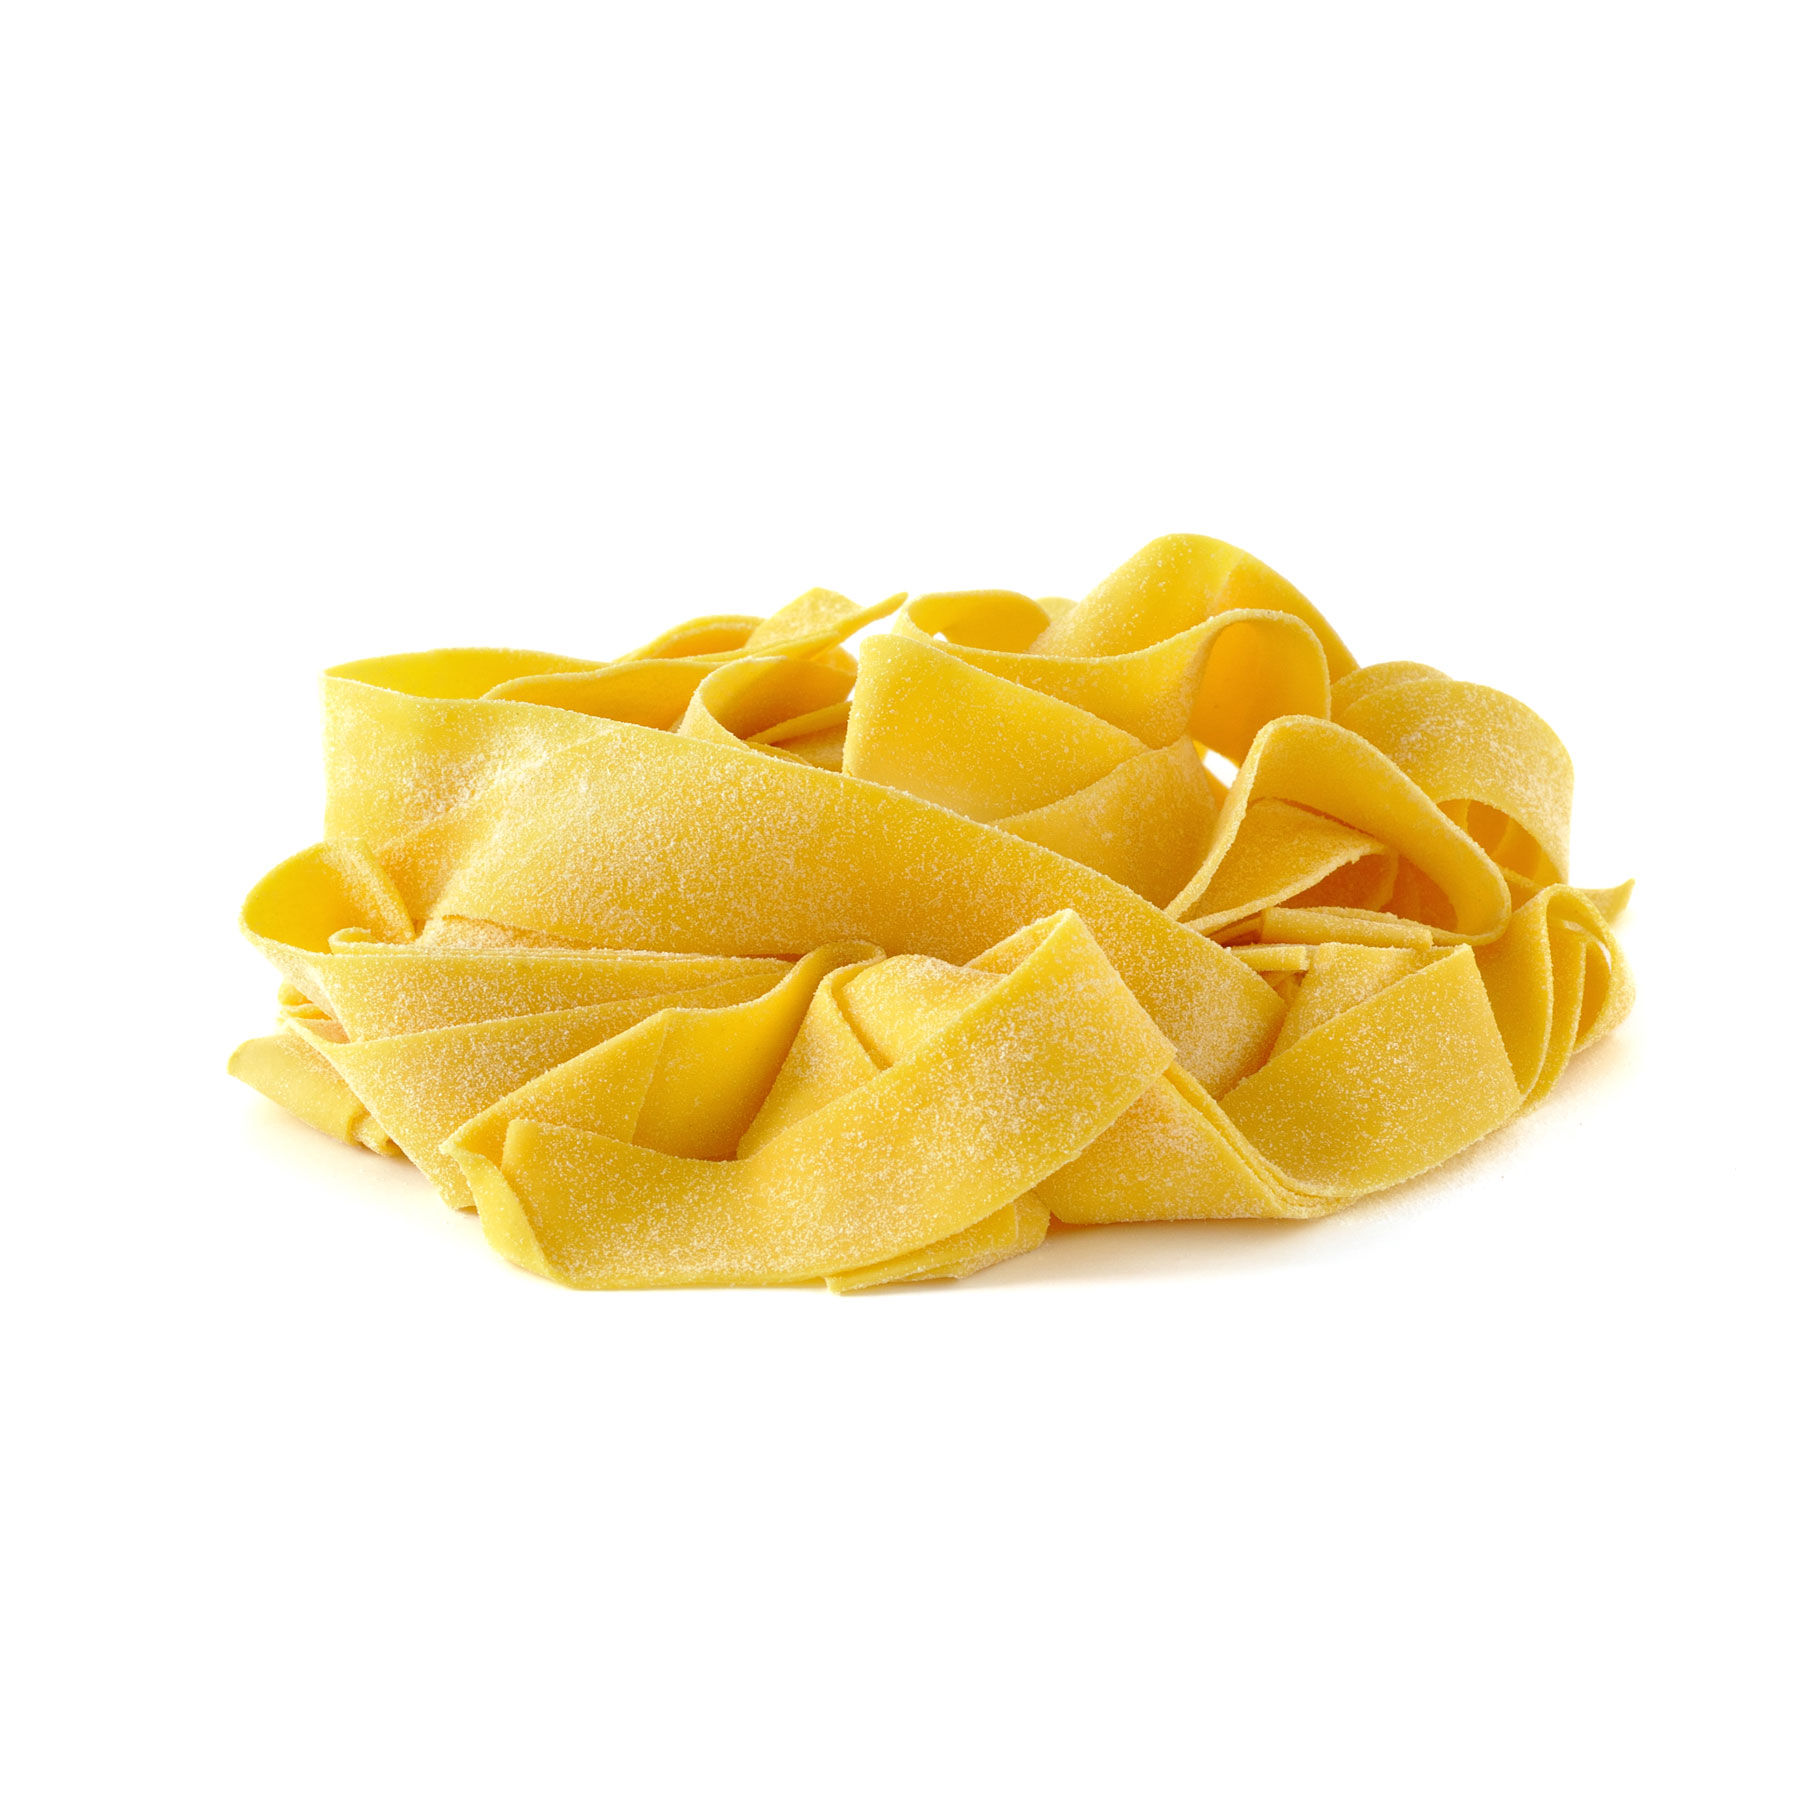 Types of pasta noodles - pappardelle